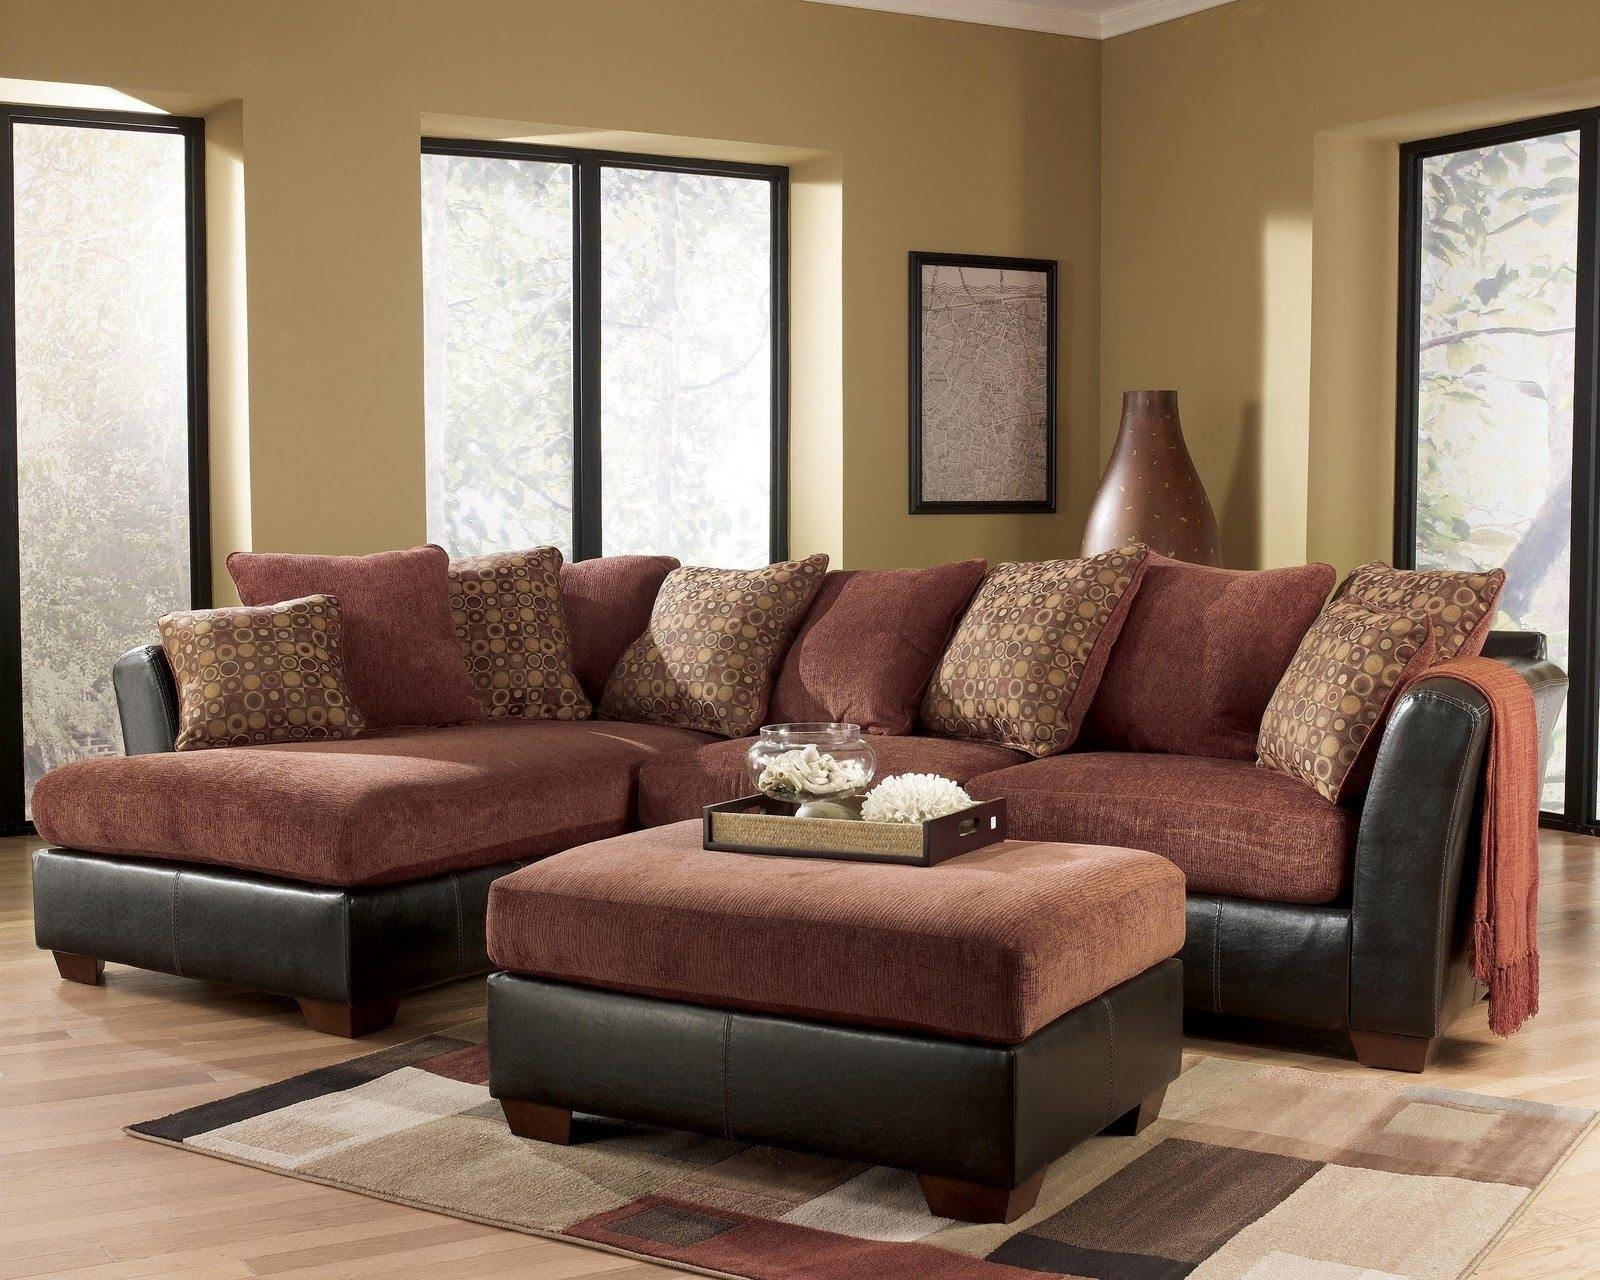 Sectional Sofa Ashley Furniture 53 With Sectional Sofa Ashley For Ashley Furniture Brown Corduroy Sectional Sofas (Photo 13 of 15)